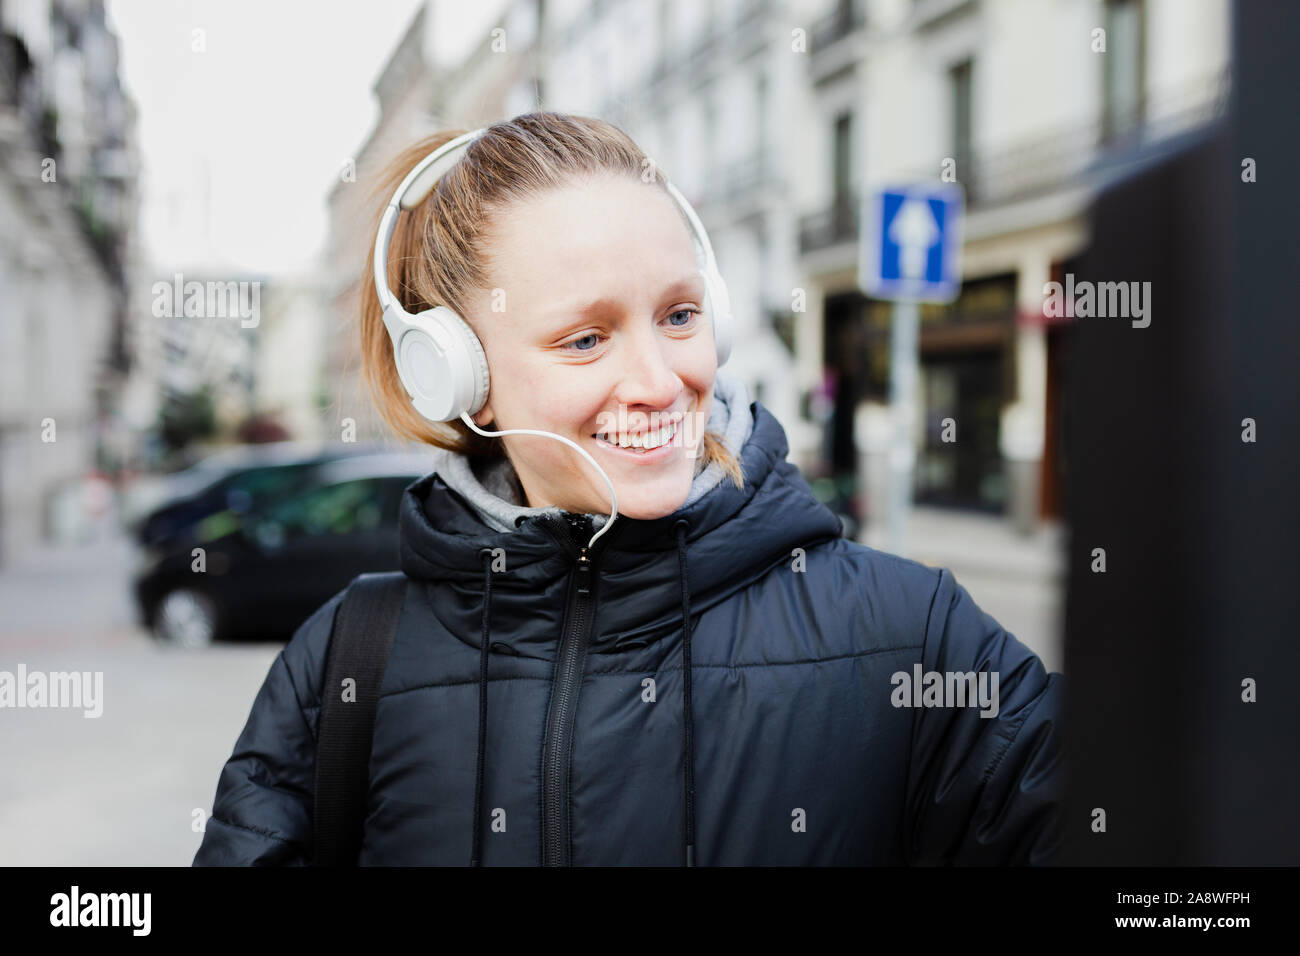 Young blonde woman paying on parking meter in the city with surprised face wearing a jacket an headphones Stock Photo